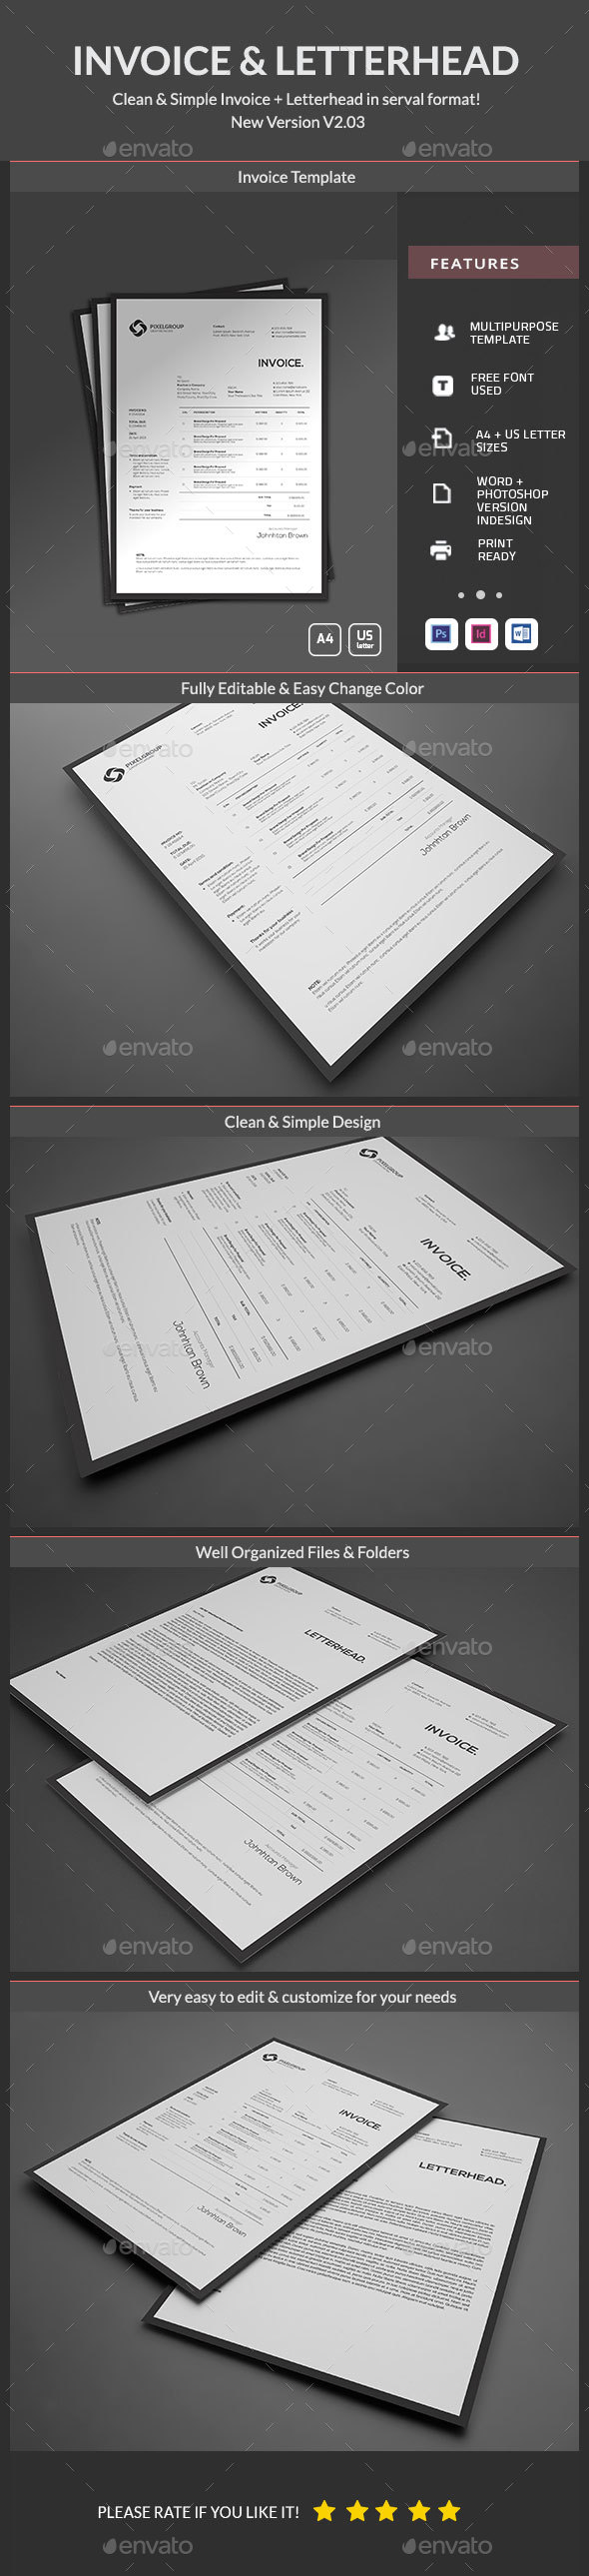 letter format on letterhead%0A Invoice Template PSD  InDesign INDD  MS Word  A  and US Letter